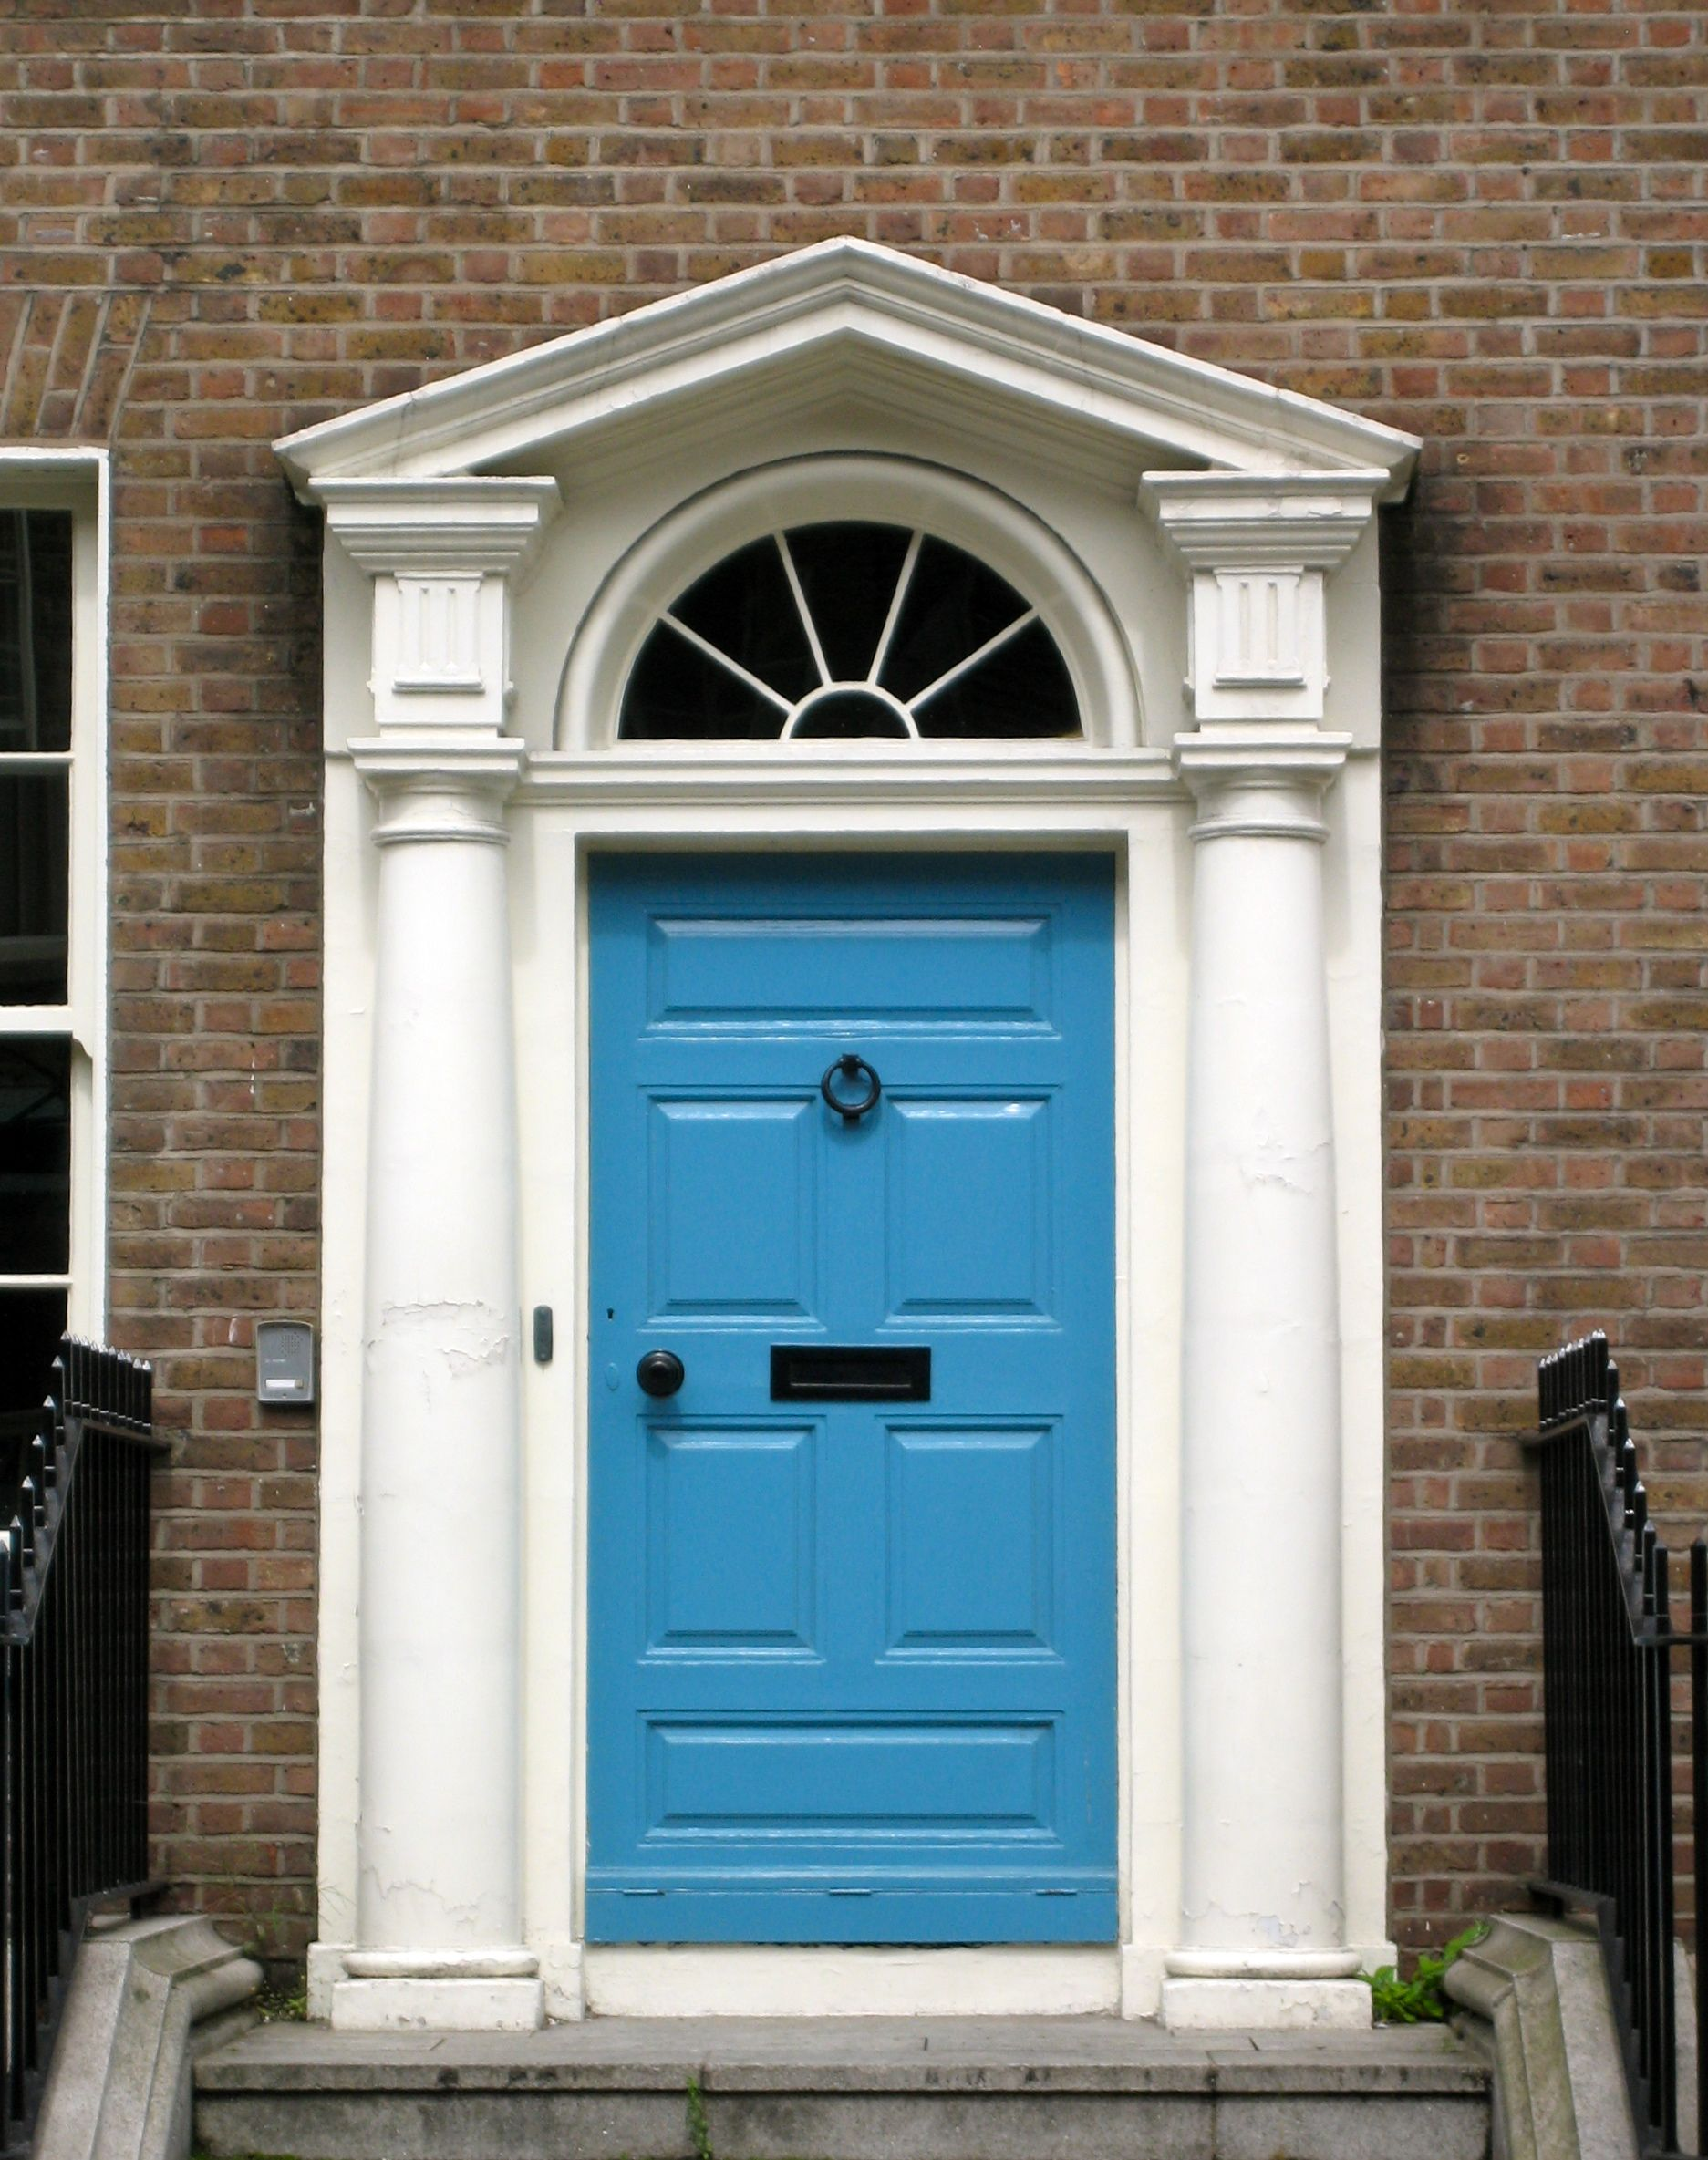 irish doors | Irish door! | Doors | Pinterest & irish doors | Irish door! | Doors | Pinterest | Doors | Pinterest ... pezcame.com